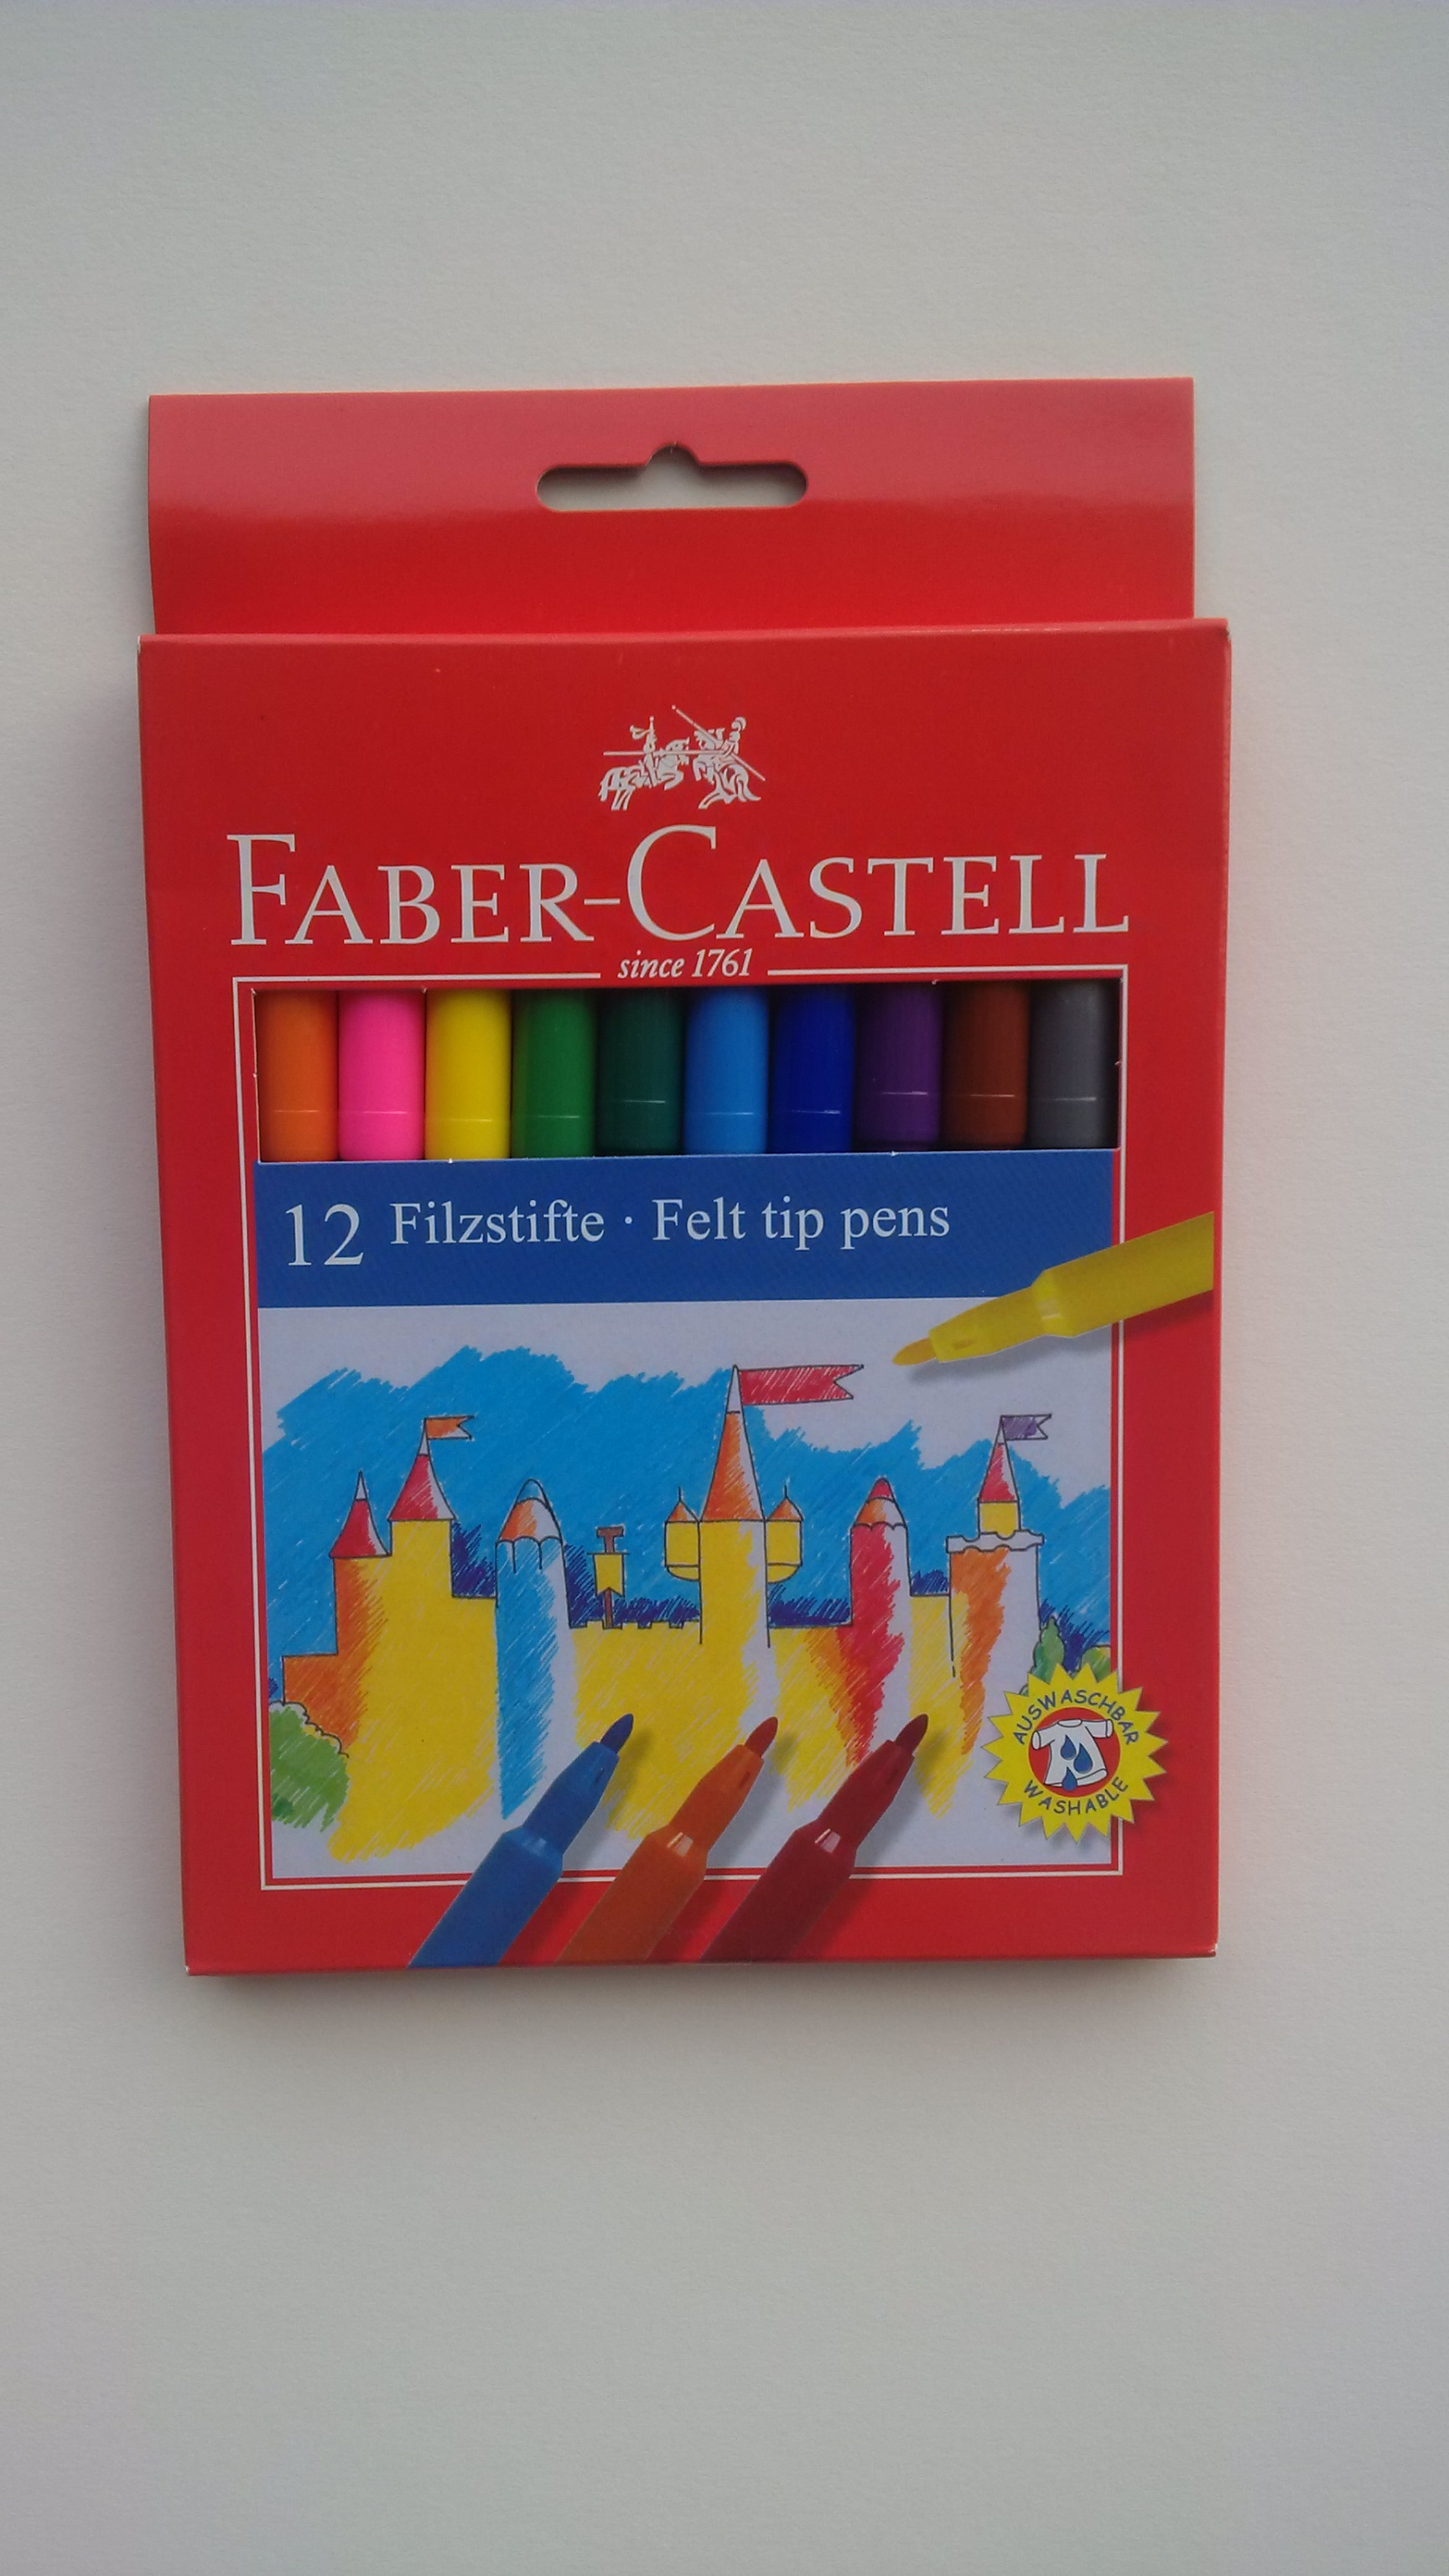 FABER CASTELL 12 FIBRE TIPPED PENS 554212 (155110)